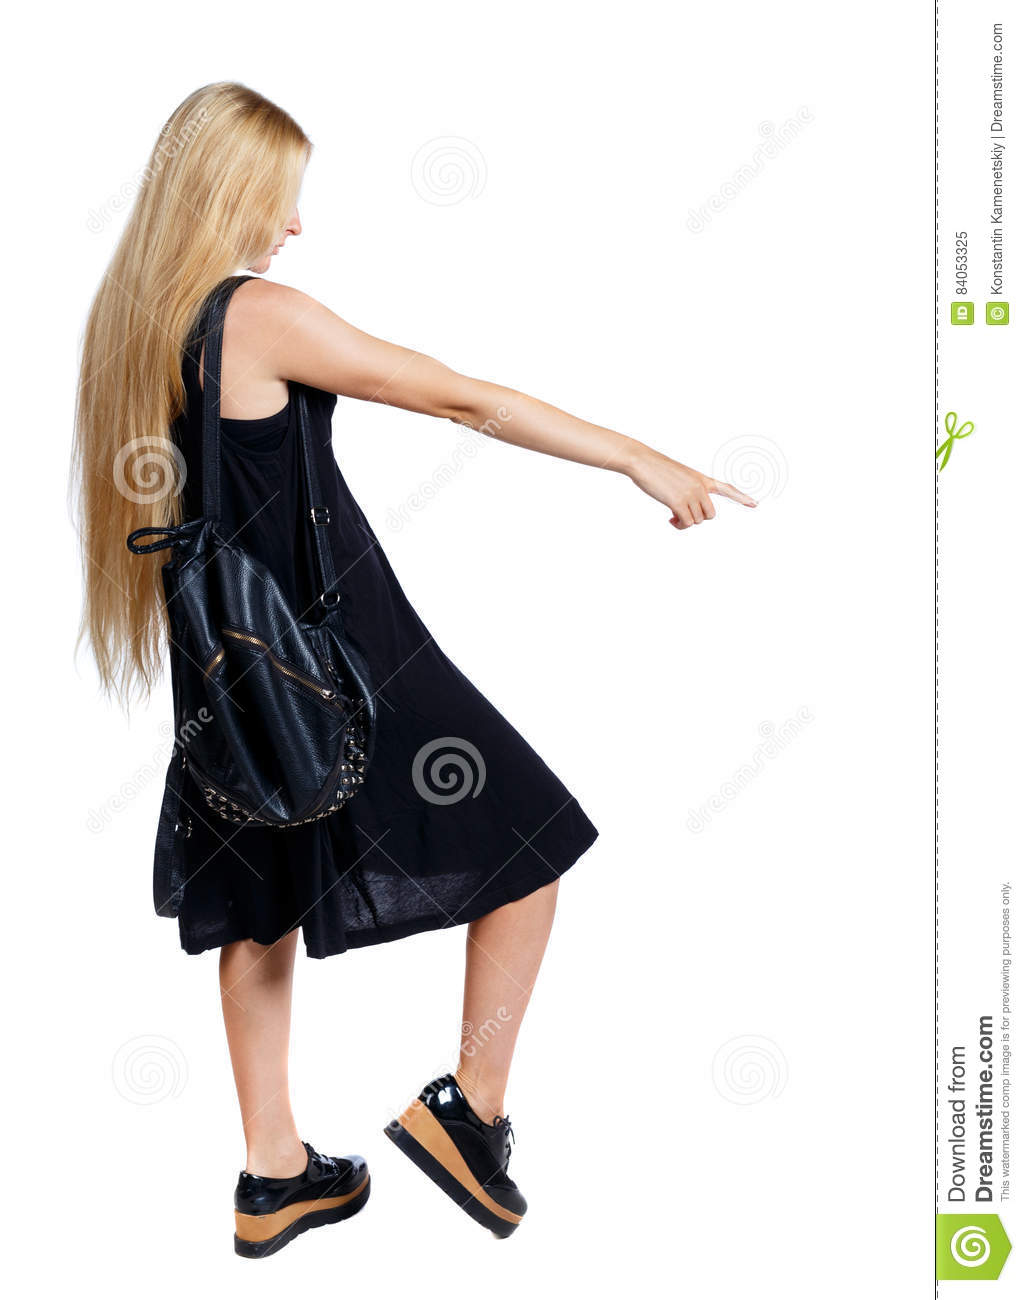 f2739fa113 Back View Of Pointing Woman. Stock Image - Image of attractive